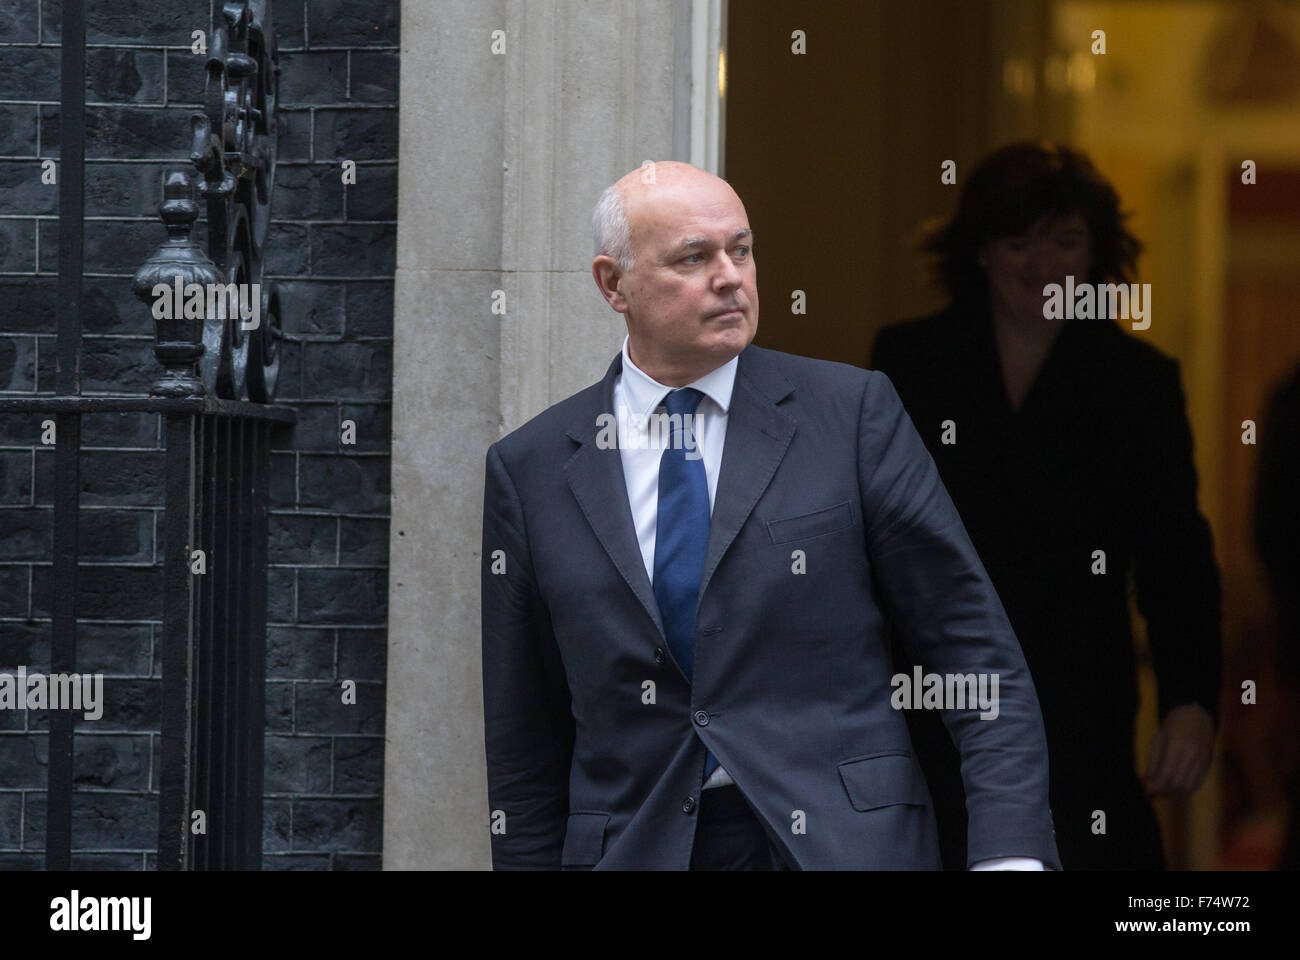 Iain Duncan Smith,work and pensions secretary,in Downing street for a cabinet meeting - Stock Image